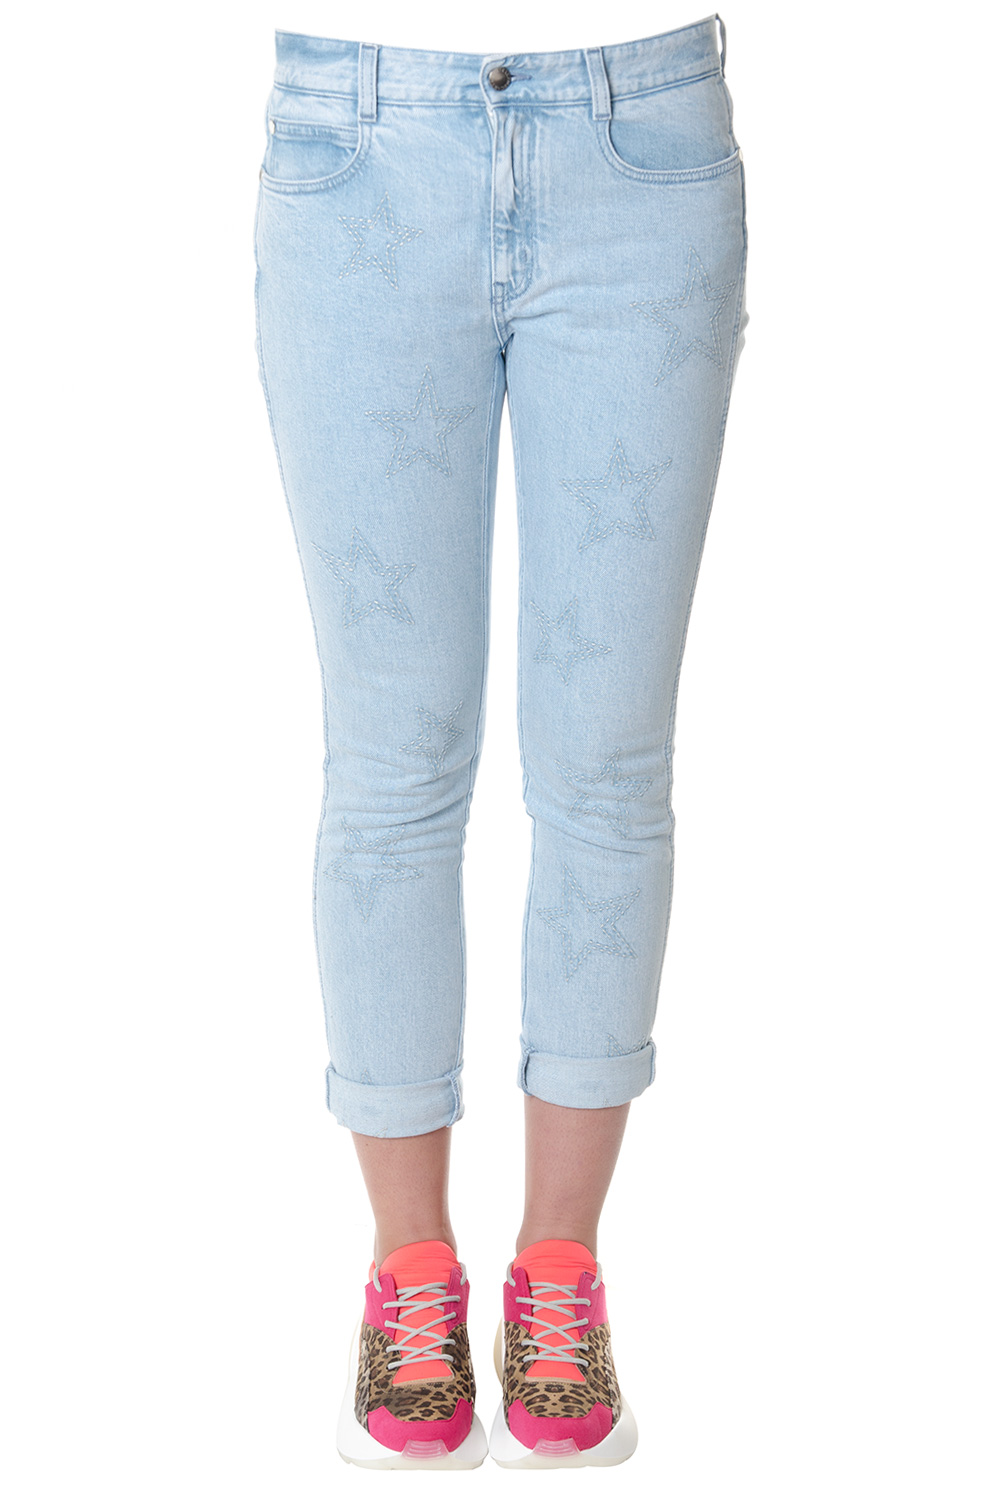 967ee7c42bb SKY SKINNY FIT STARS PRINT JEANS SS 2018 - STELLA McCARTNEY - Boutique  Galiano